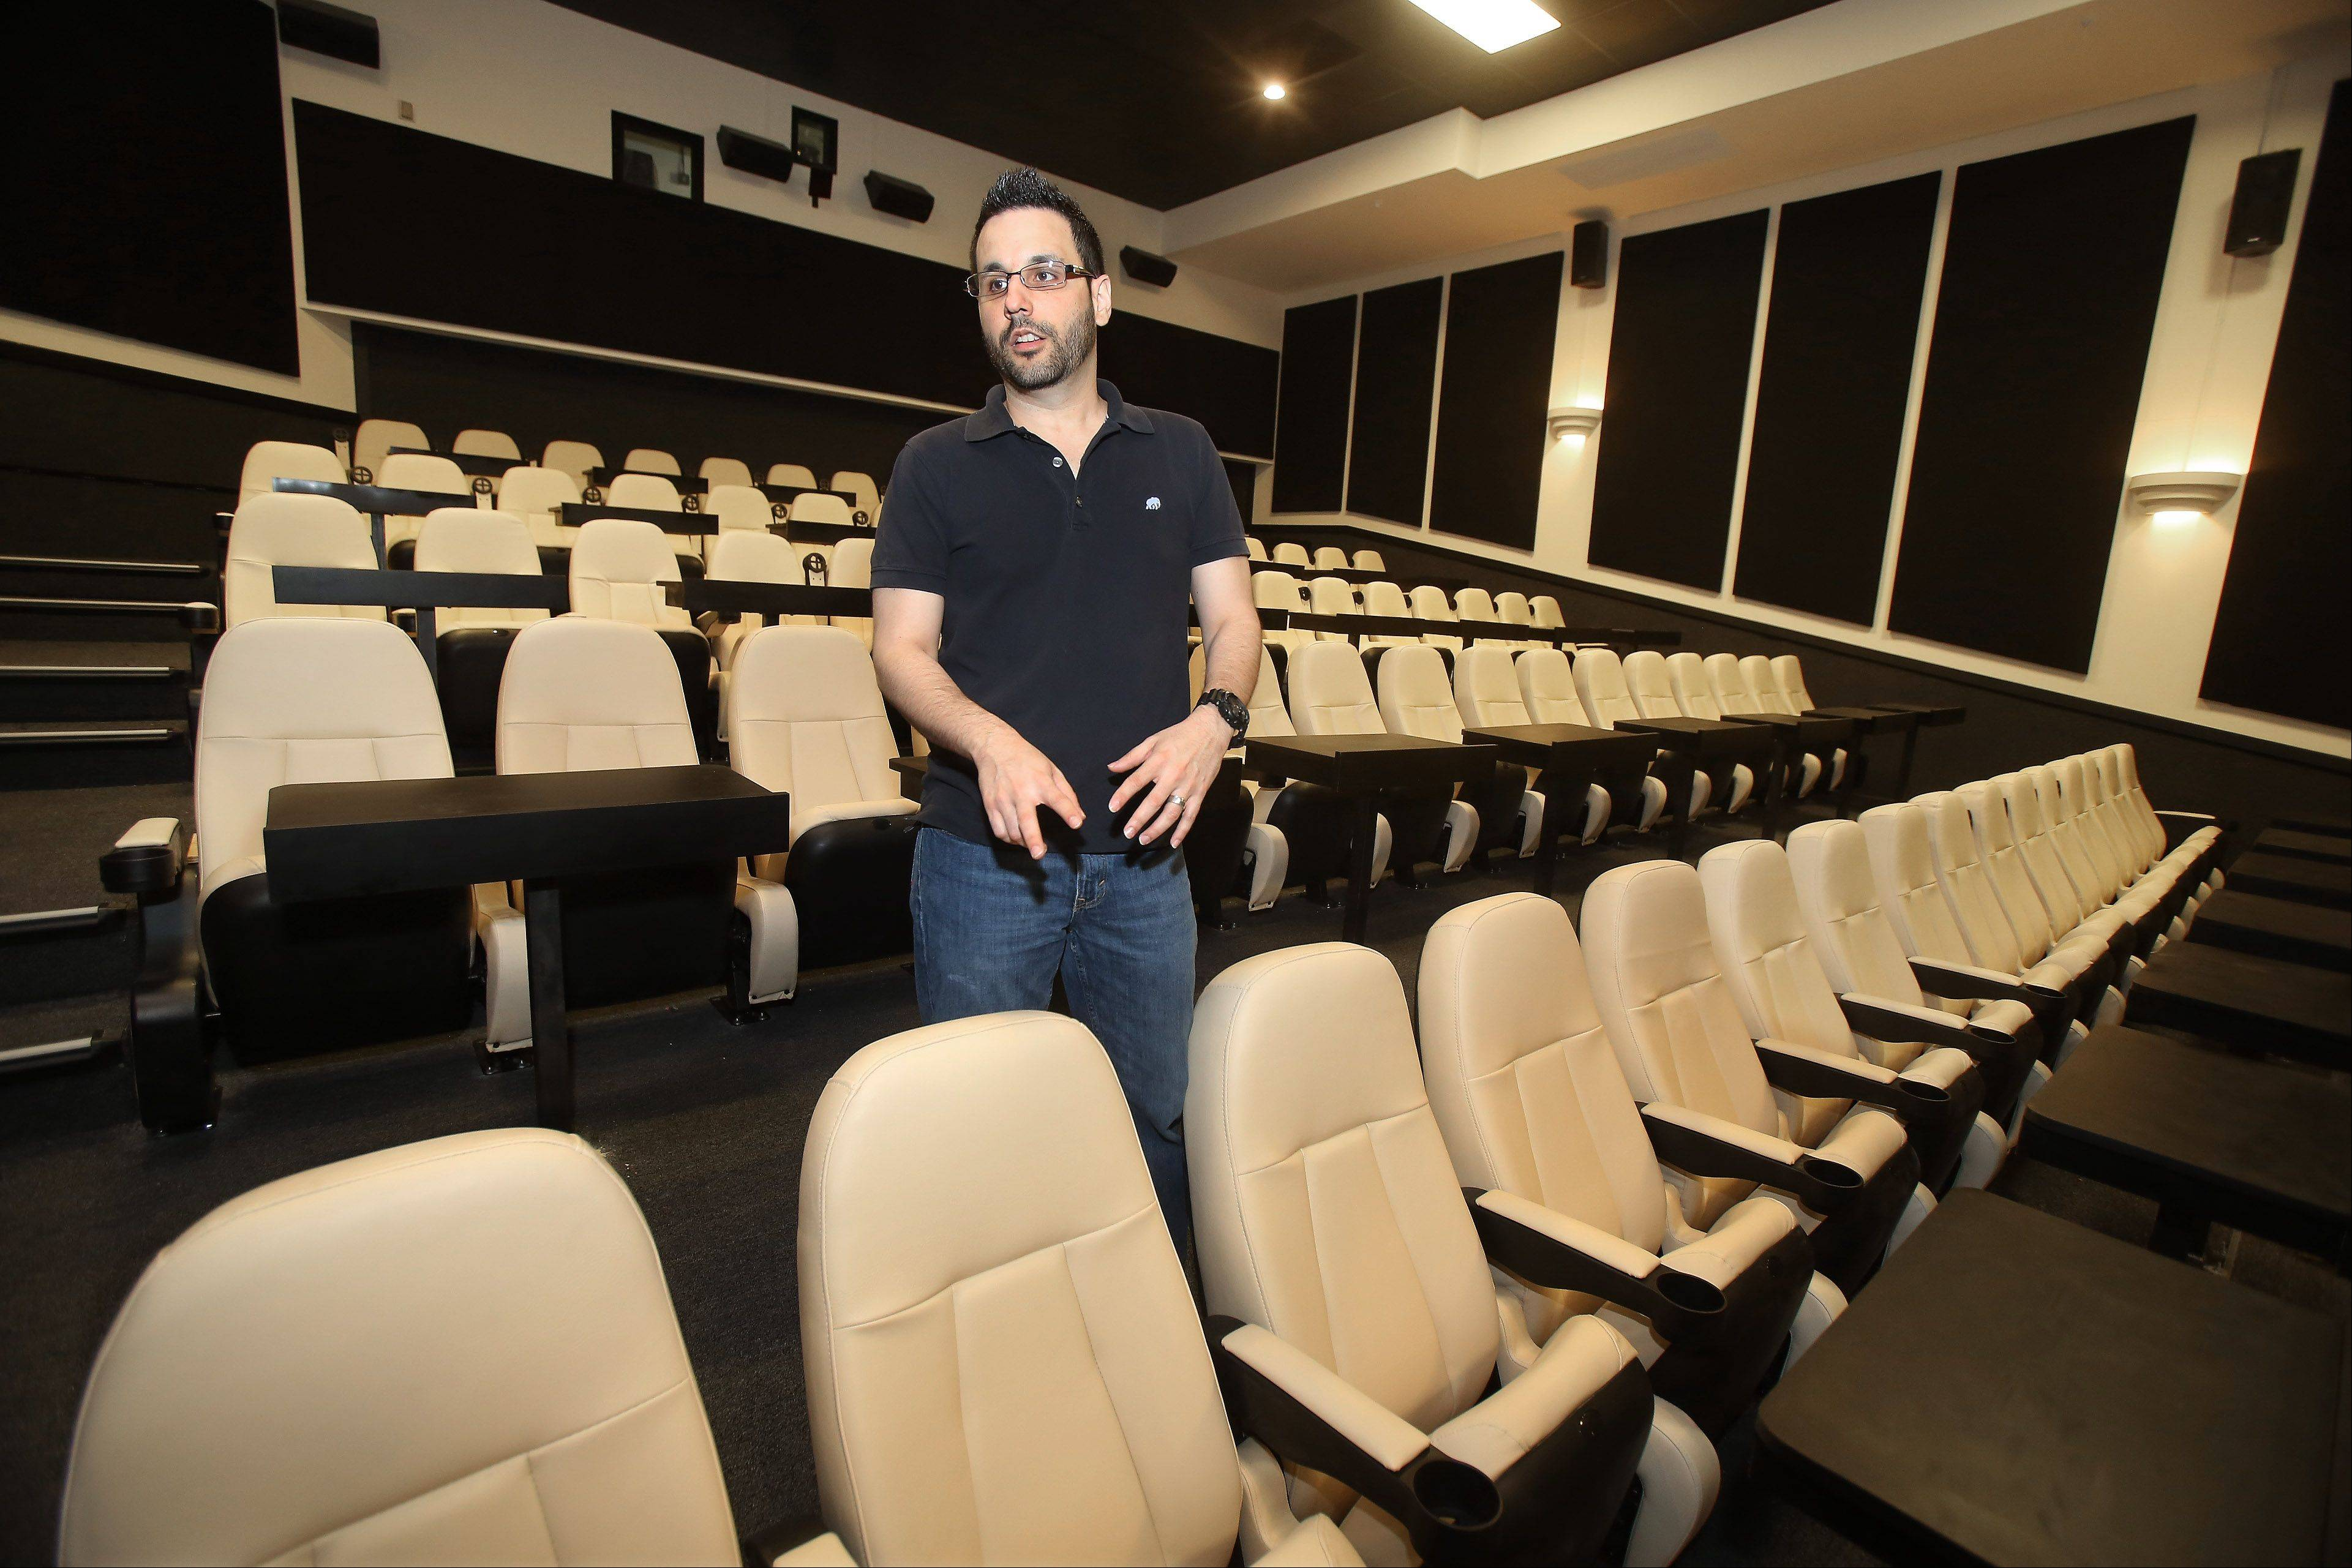 Star Cinema Grill opens next month in Arlington Hts.